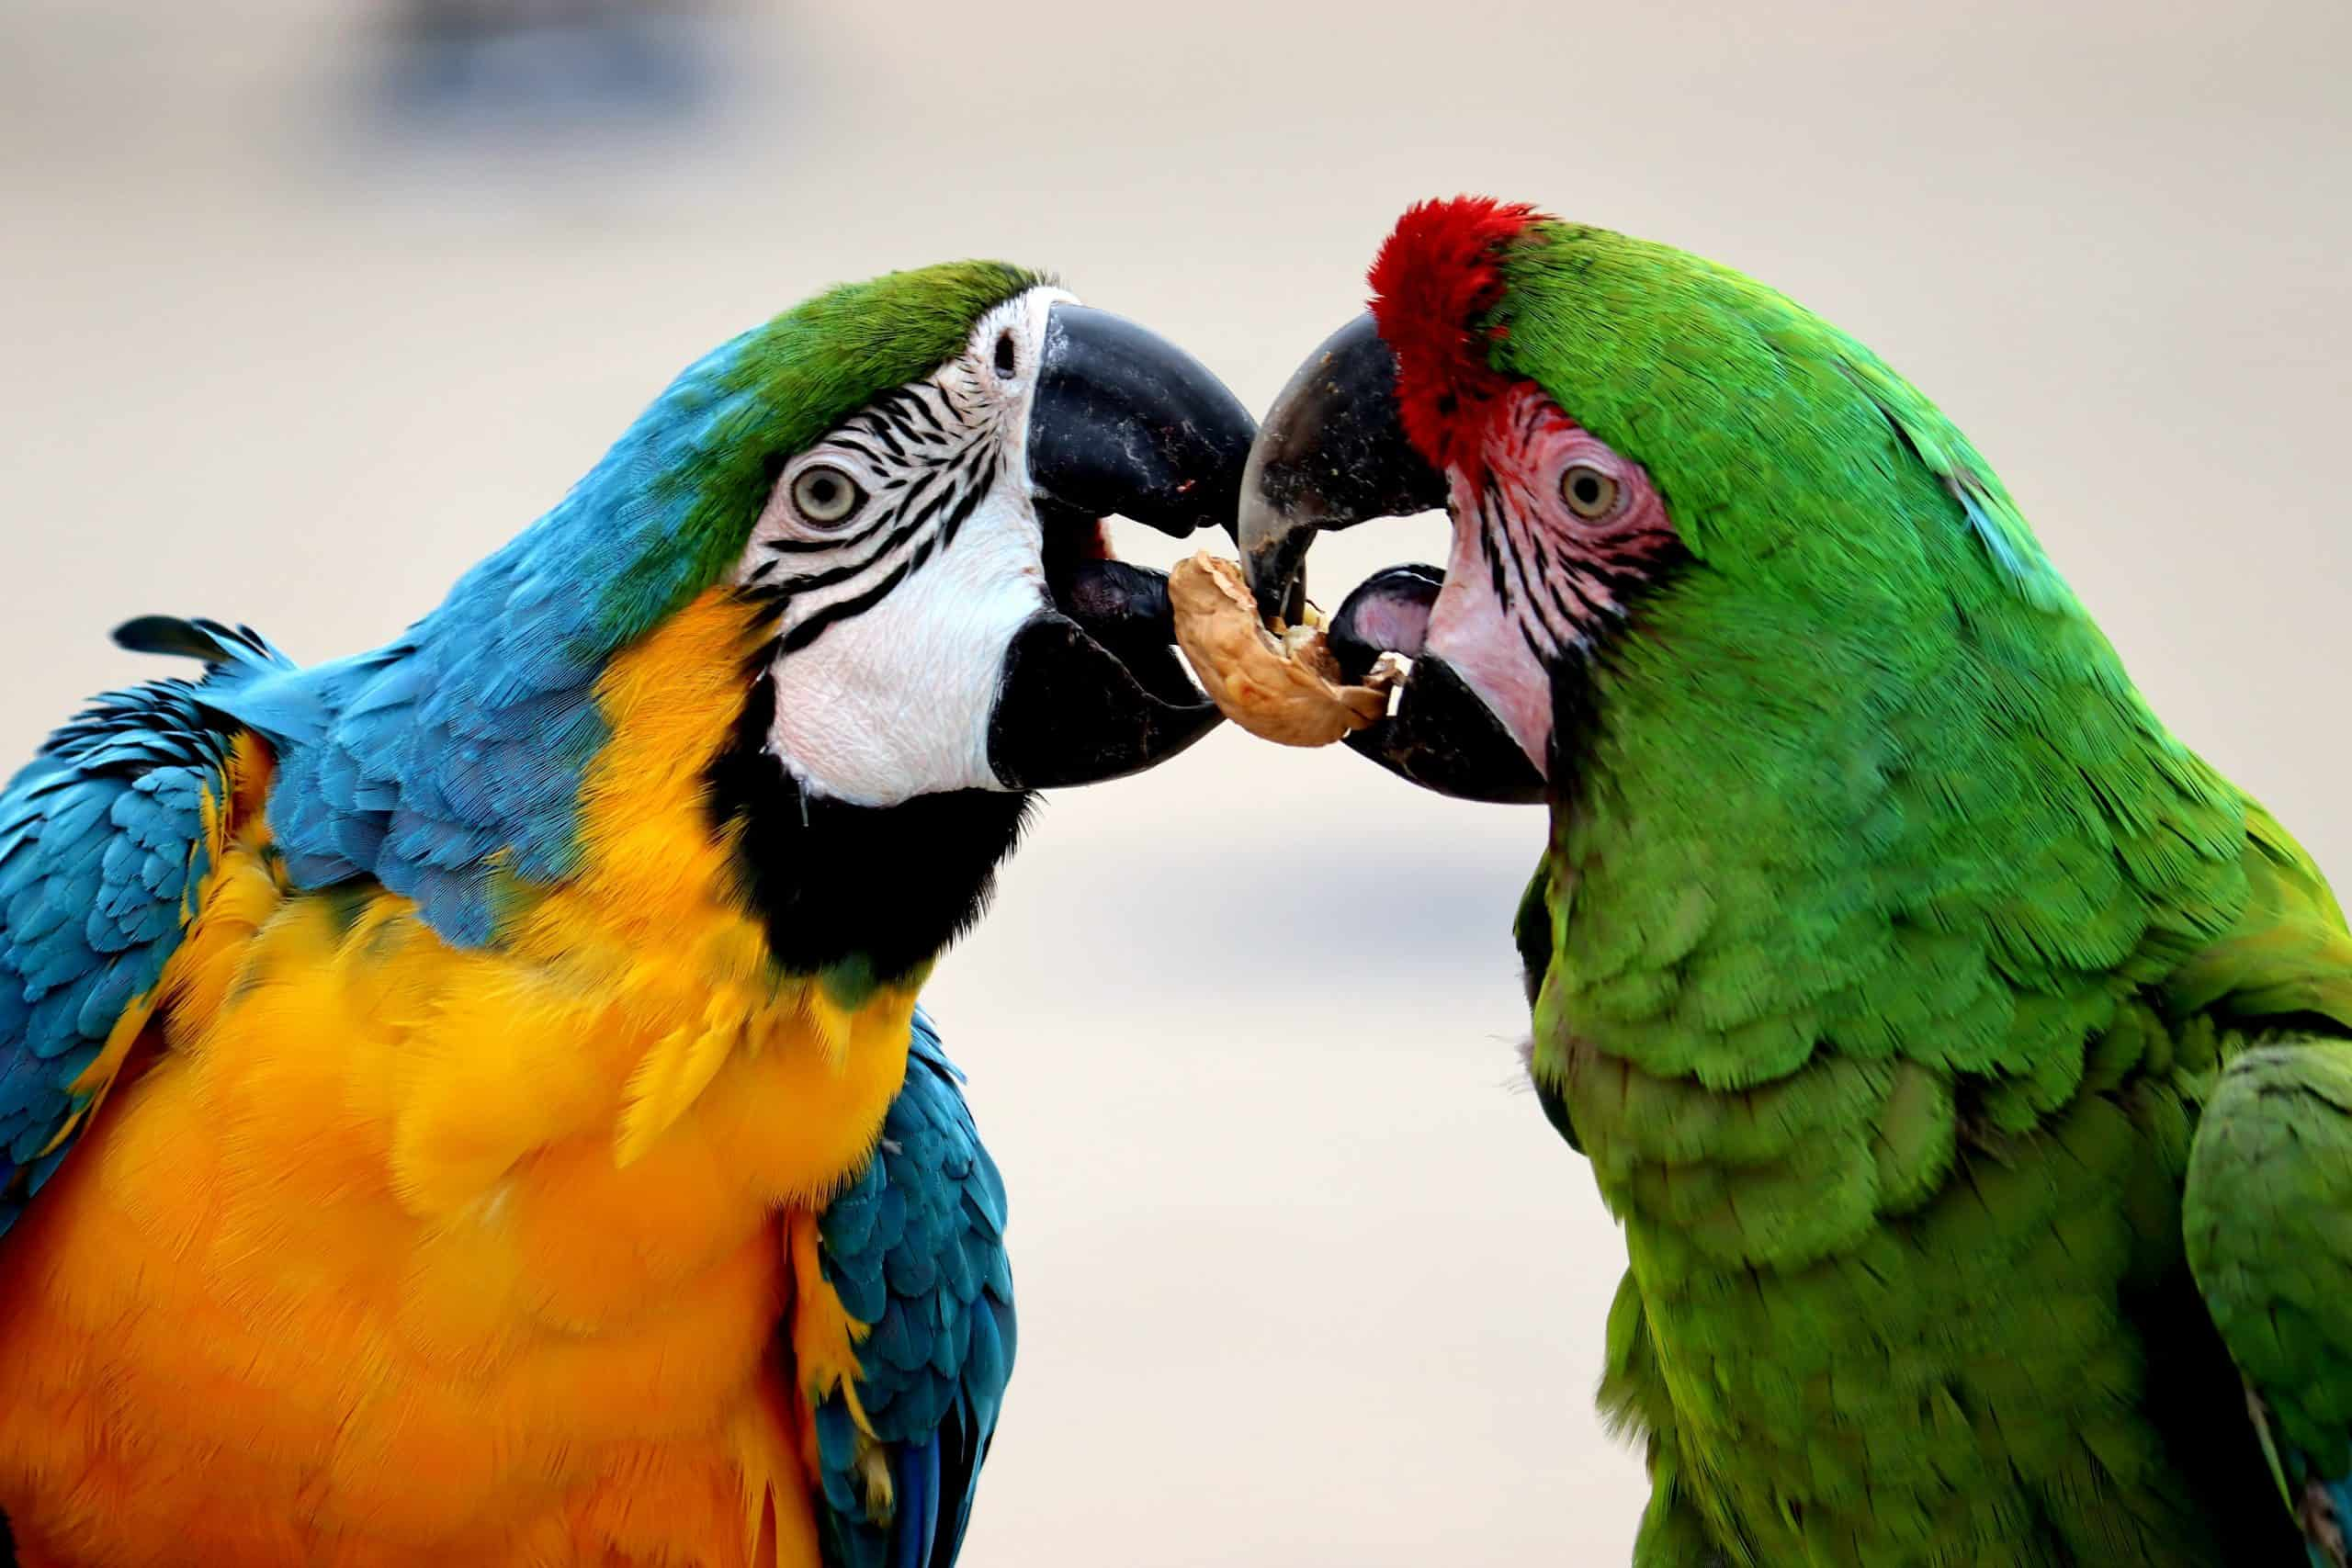 Talking Parrot - How To Get Your Parrot Talking